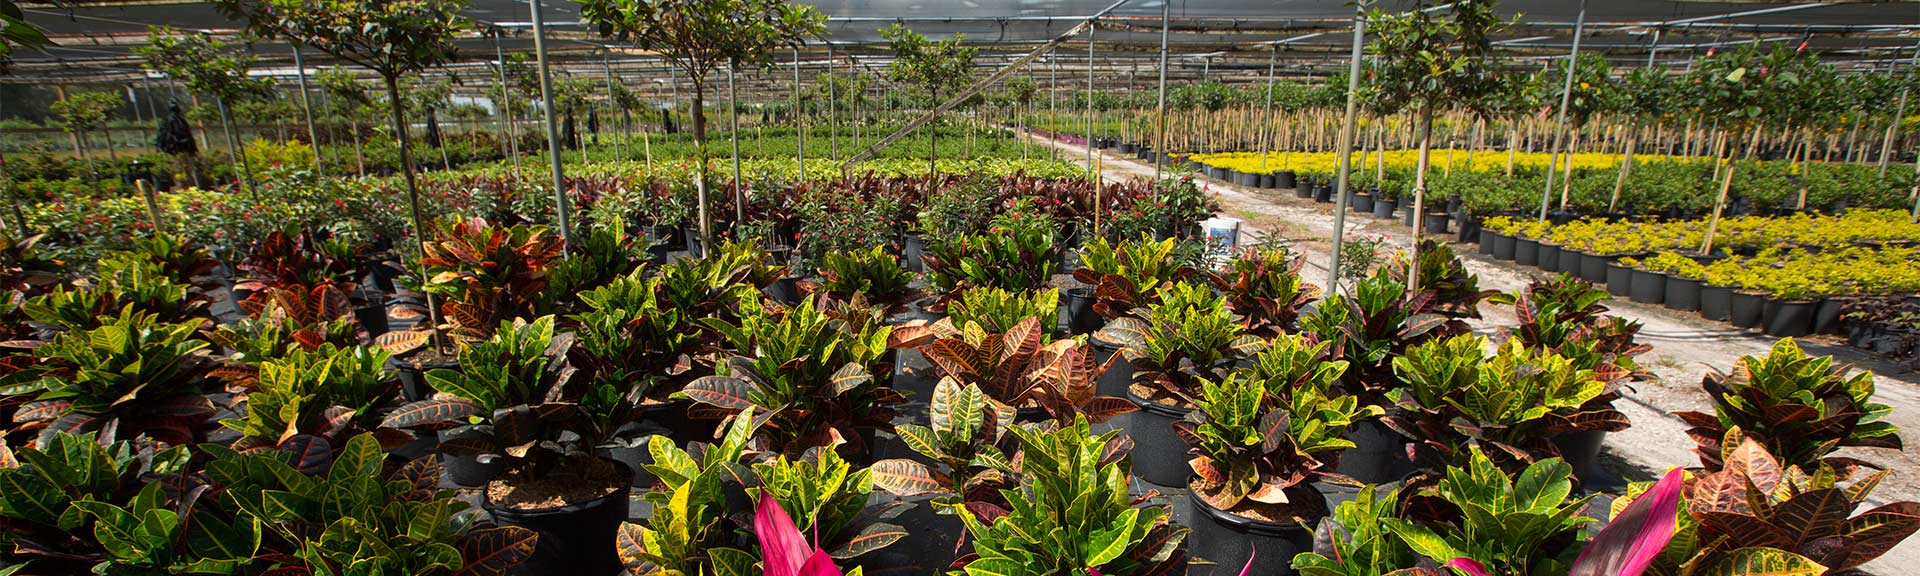 Market Category Page - Outdoor Nurseries